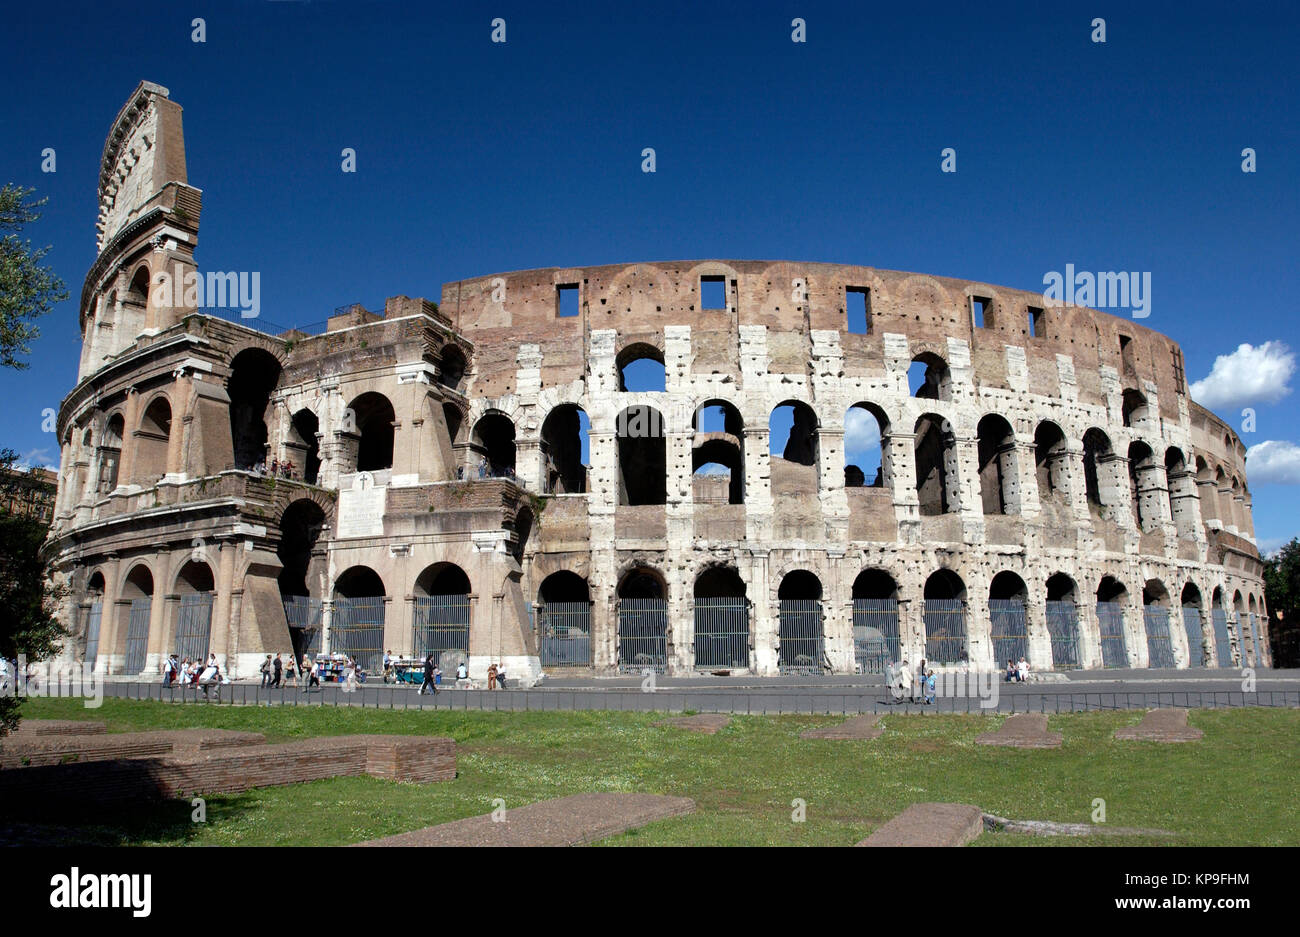 Ruins of the Colosseum in Rome in Italy.  Gladiatorial combat took place in this vast  amphitheater in Roman times. - Stock Image